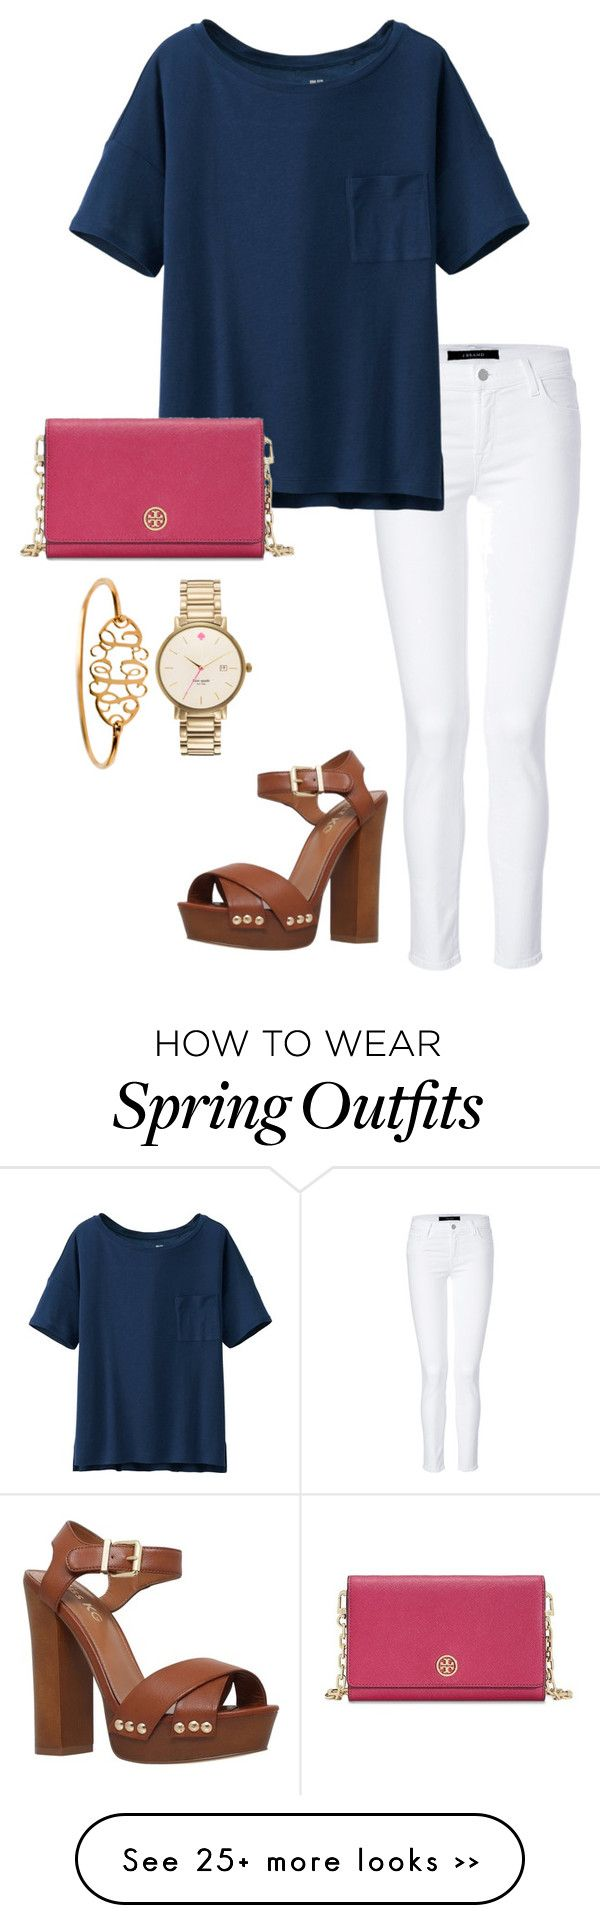 """last of spring outfits"" by sarinaalily on Polyvore featuring J Brand, Uniqlo, Tory Burch, Kate Spade and"